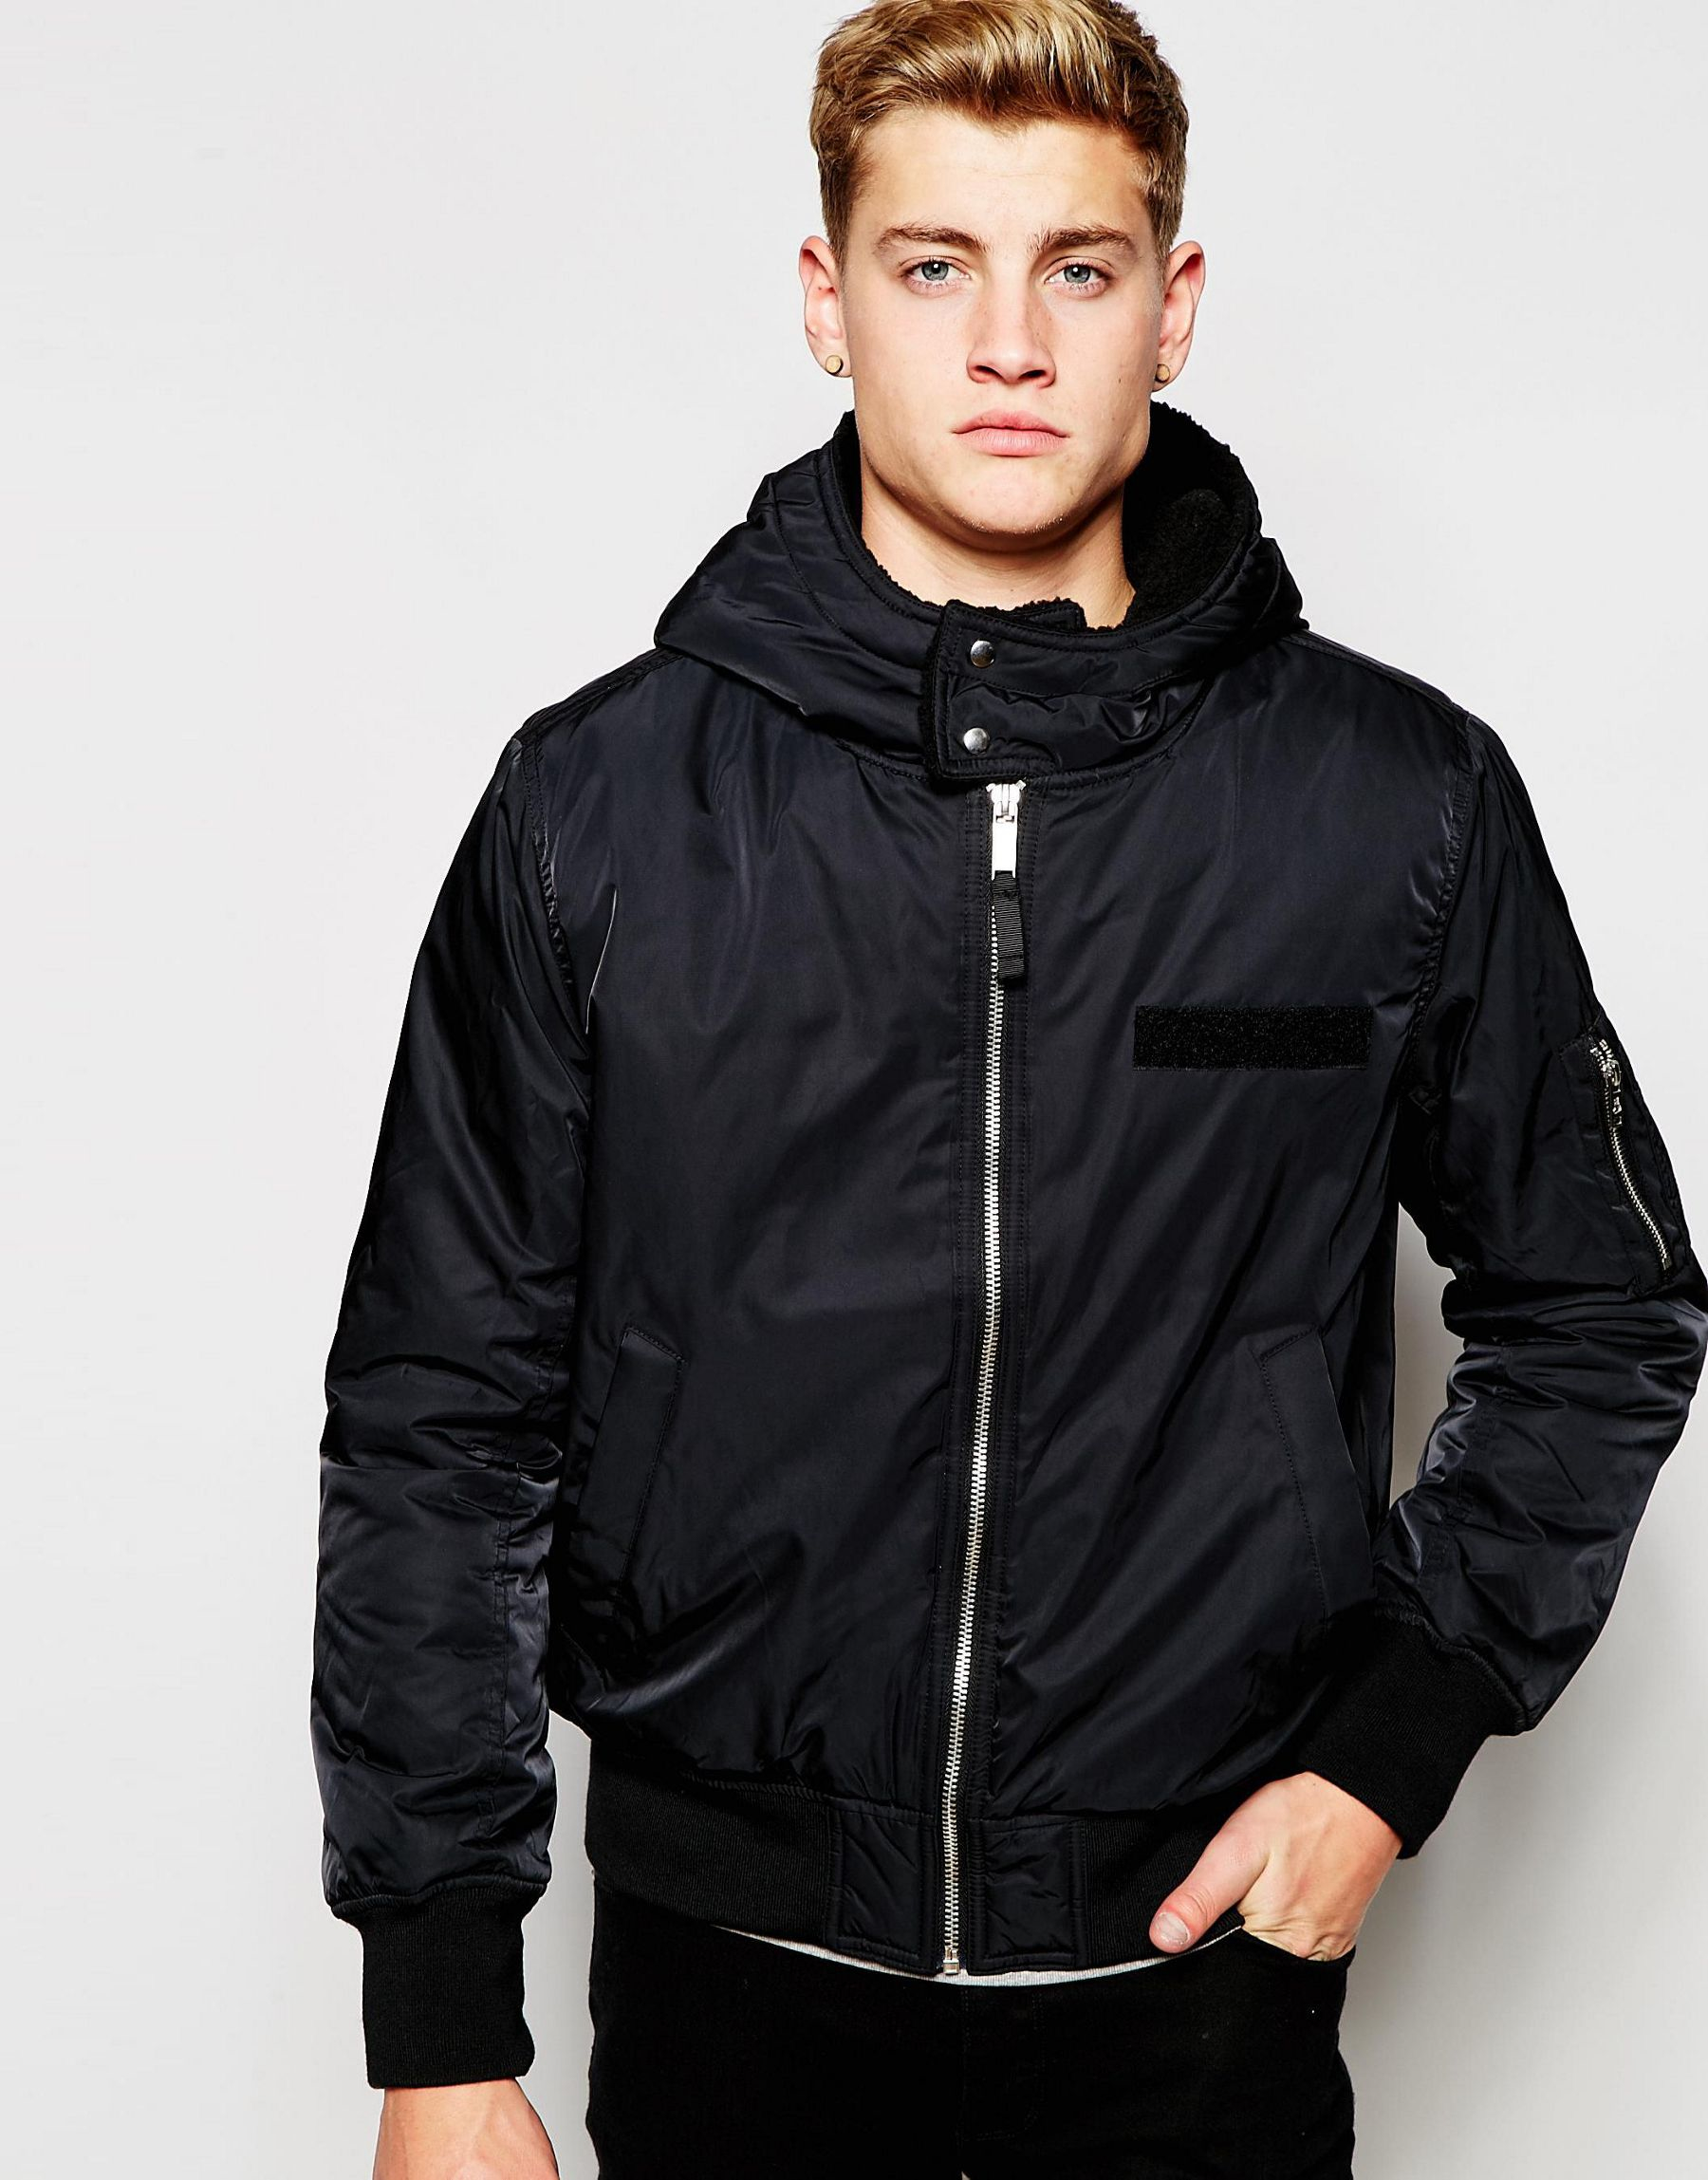 Feel like a hero for less with mens bomber jackets at discount prices from MandM Direct Ireland. Originating from the US military in the s, the bomber jacket has become a fashion staple. Choose from a selection of letterman jackets, hooded jackets and .